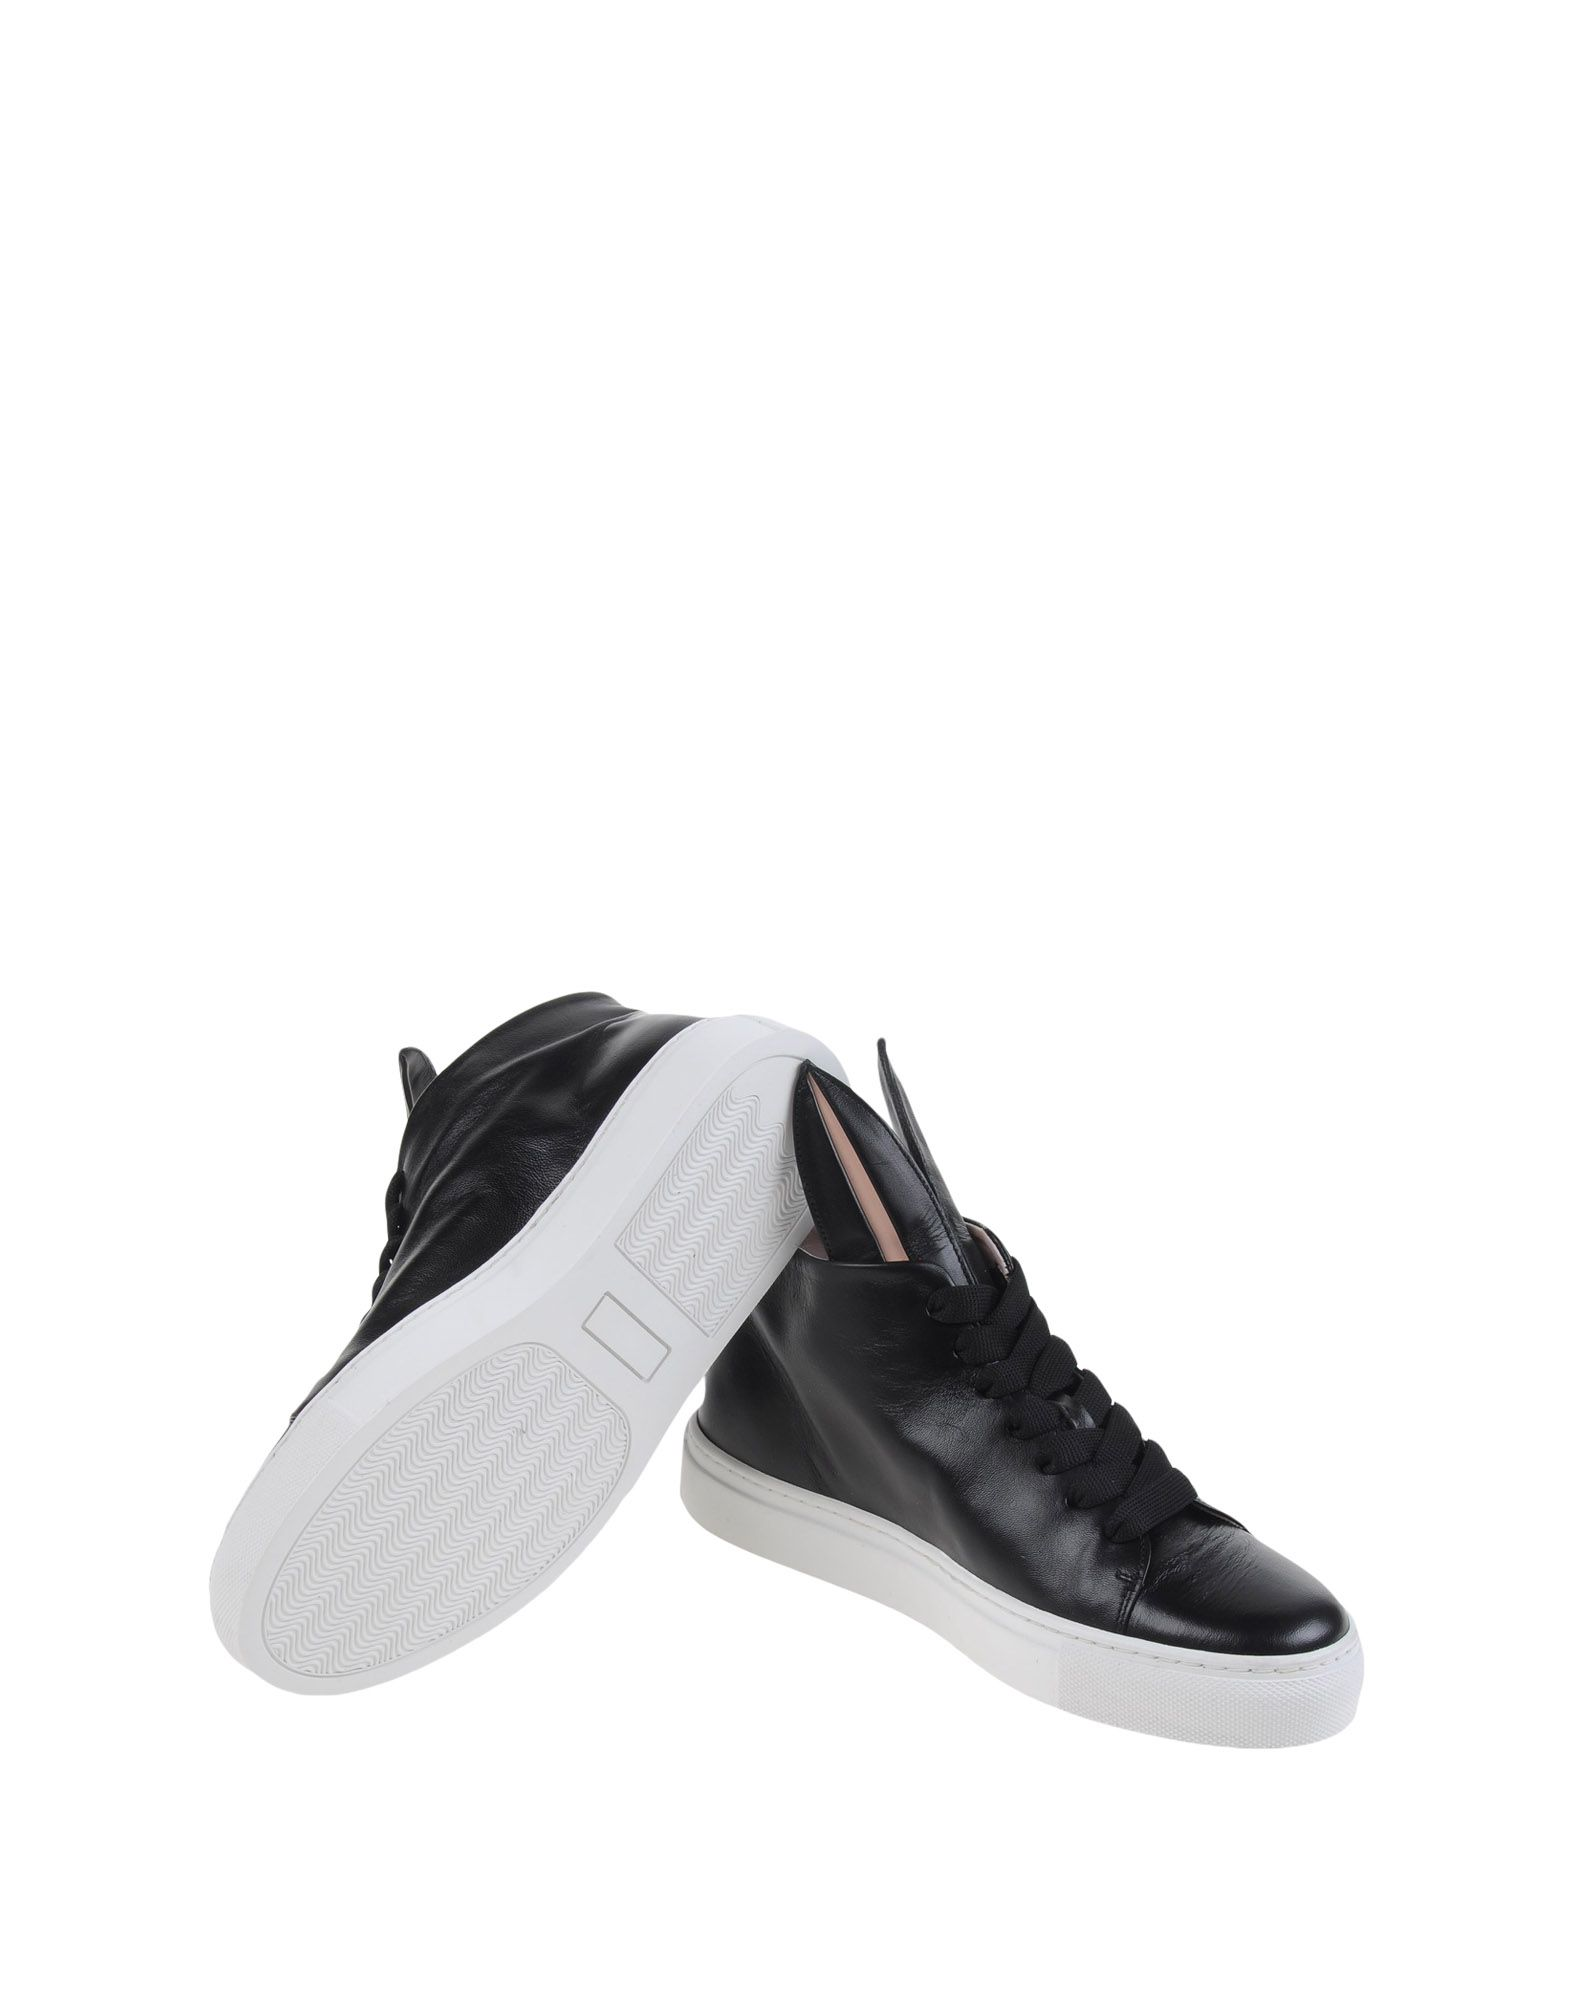 Sneakers Minna Parikka High Top Sneaker With Bunny Ears - Femme - Sneakers Minna Parikka sur